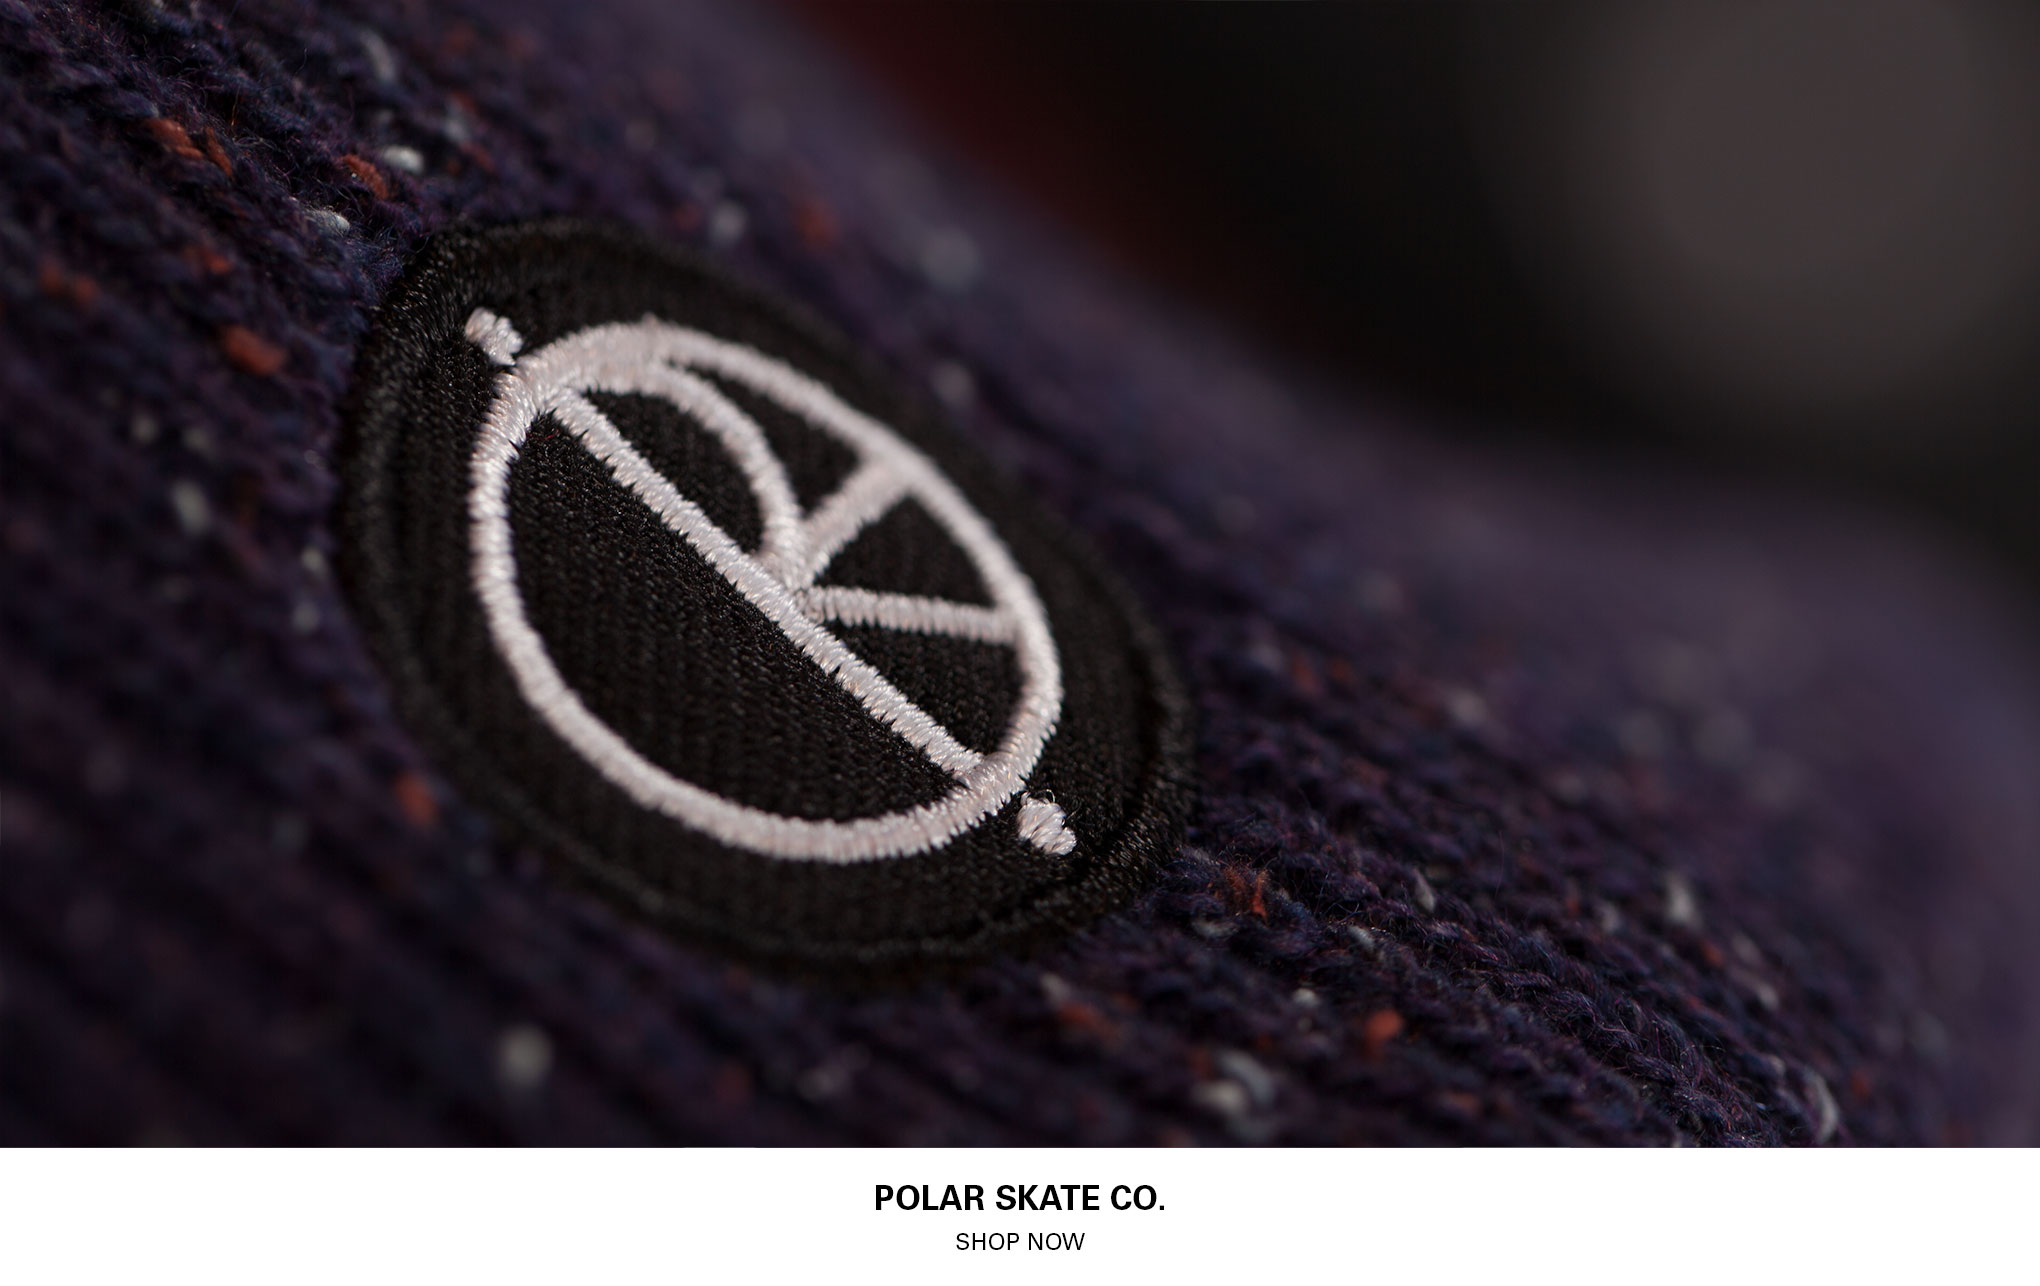 Shop Polar Skate Co. Fall/Winter 2016 Collection now at Streetmachine. Great selection of apparel, headwear, accessories and skateboards!